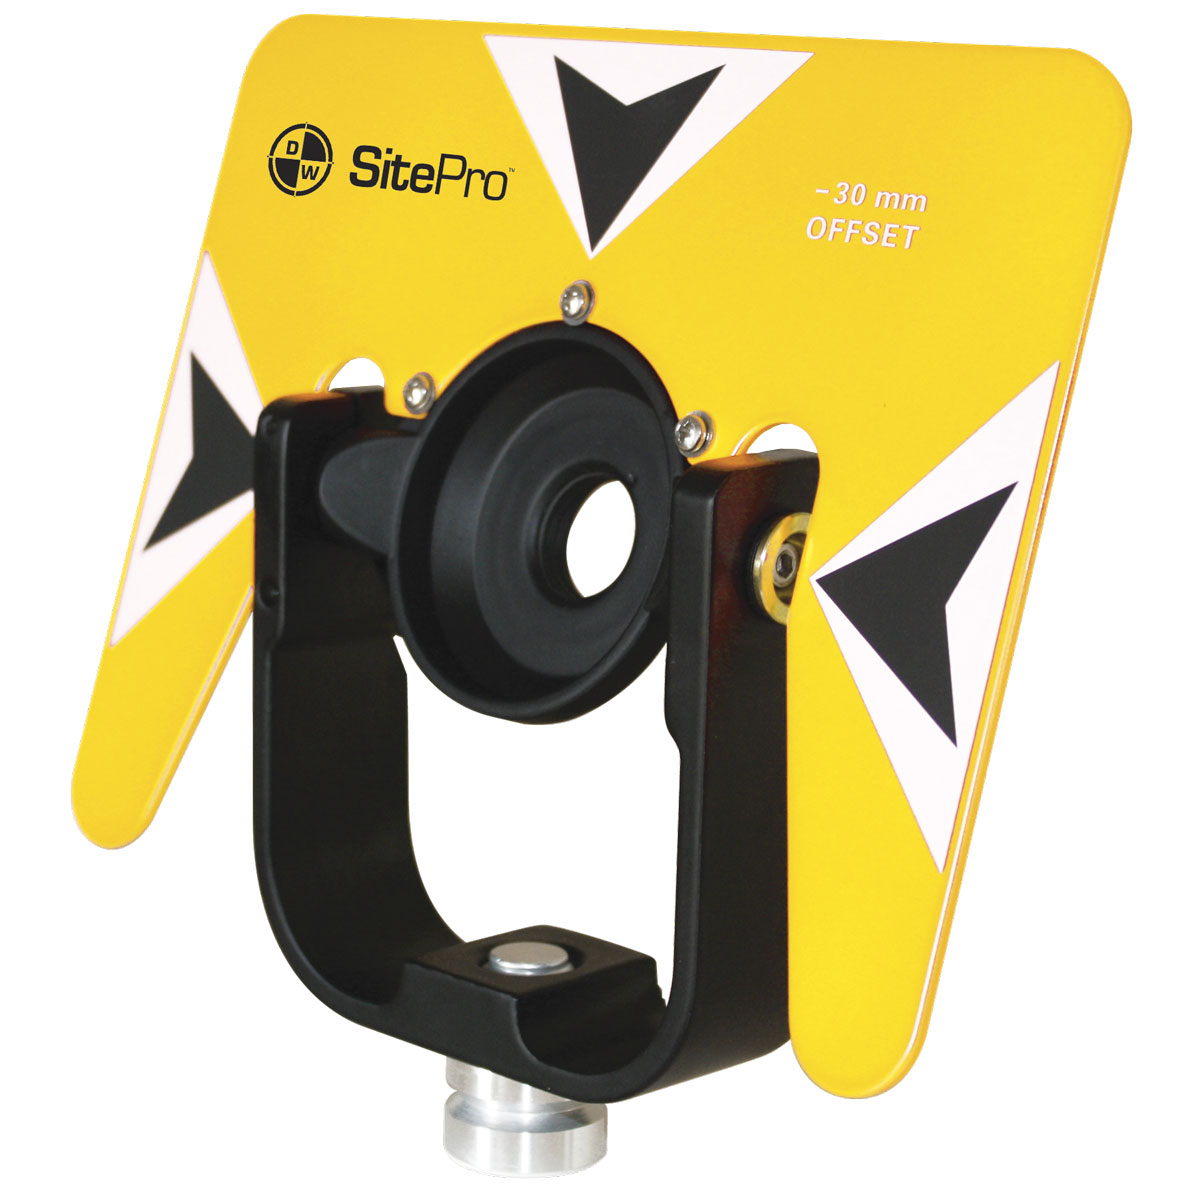 SitePro 5 by 7 Metal Target and Yoke Only 03-1012 Yellow